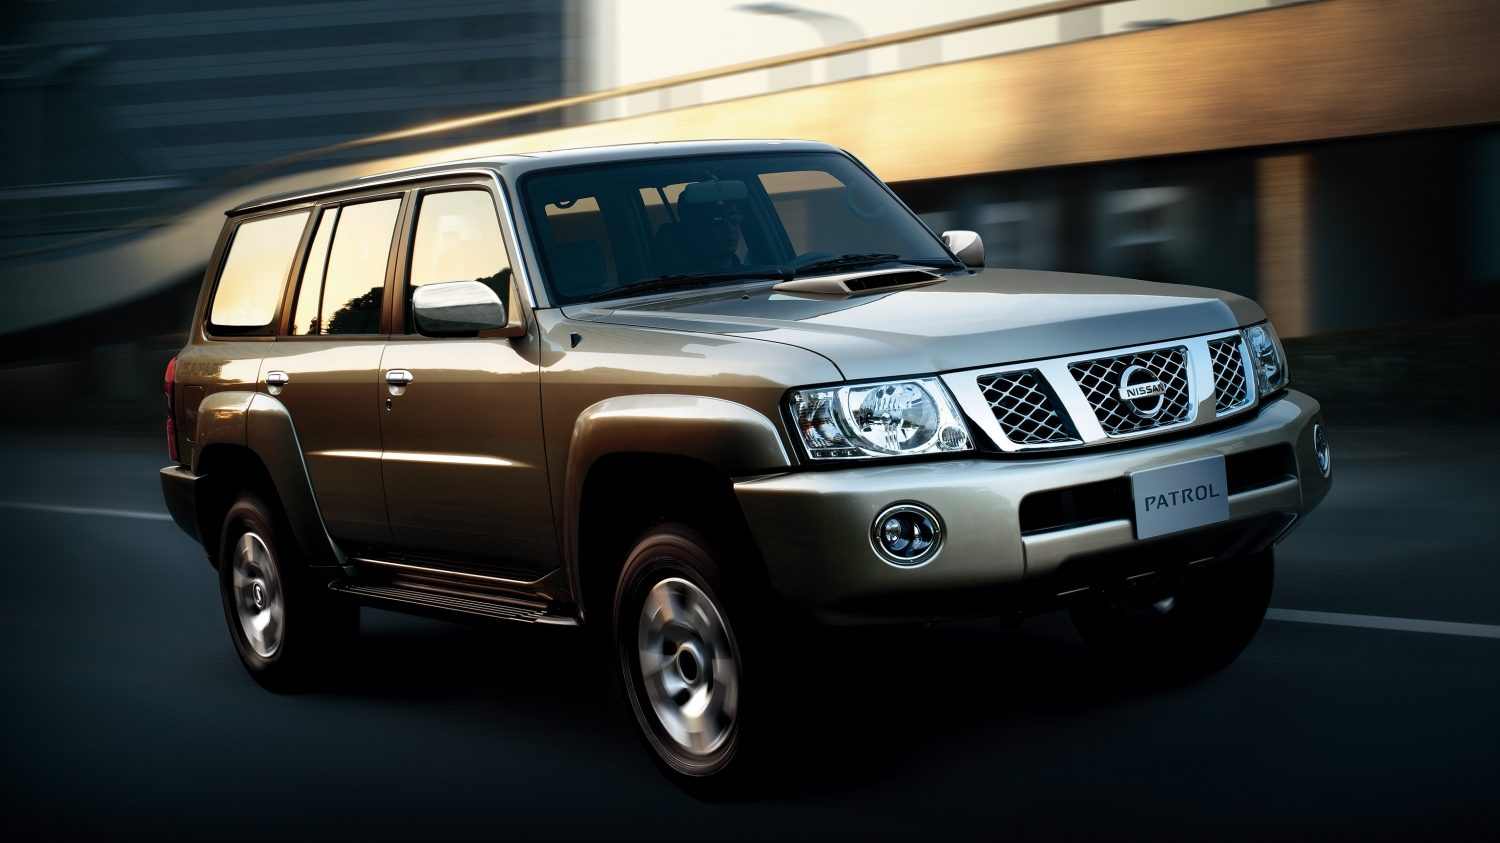 nissan patrol safari off road suv nissan qatar. Black Bedroom Furniture Sets. Home Design Ideas